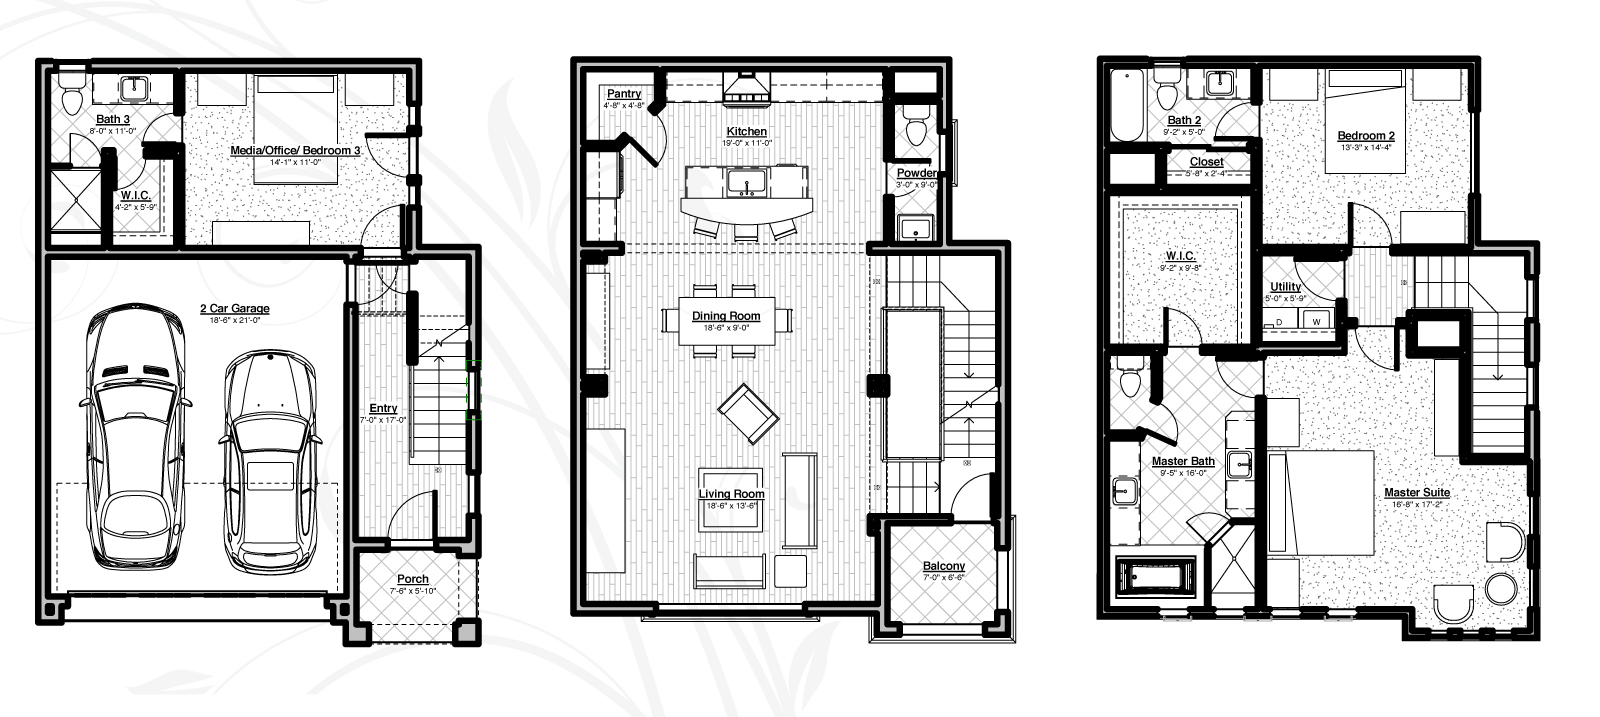 Stillman Single Family Homes Floorplan Drake Homes Inc